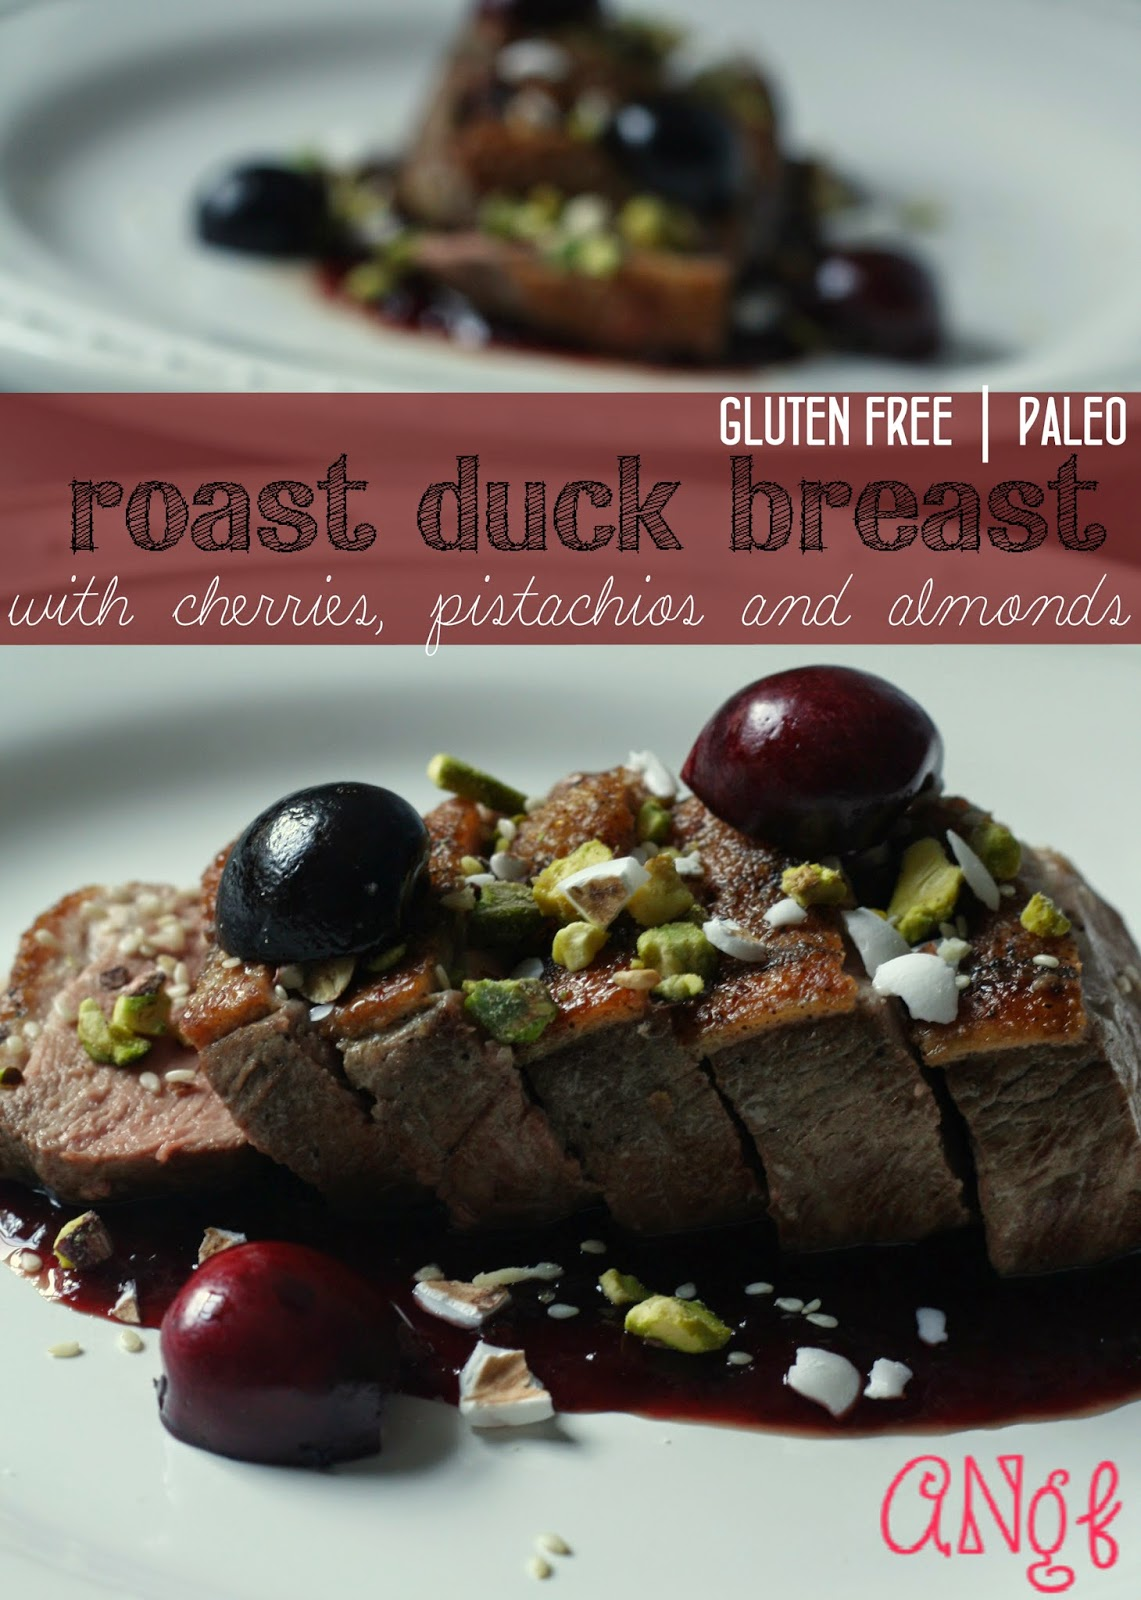 Gluten Free Paleo Roast Duck Breast with Cheries, Pistachios & Almonds from Anyonita-nibbles.co.uk